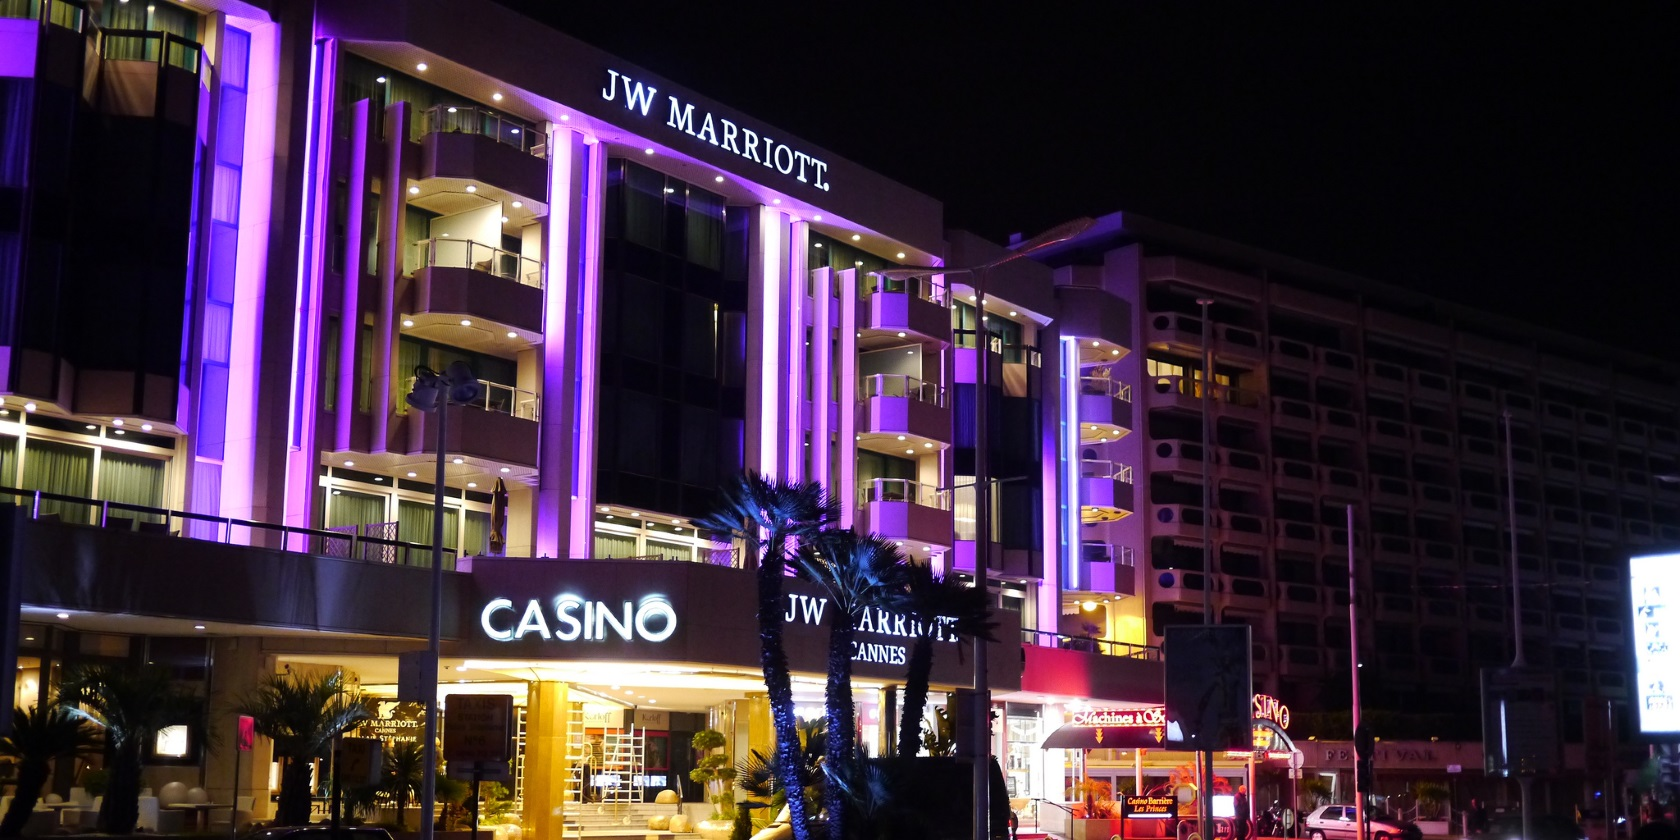 Marriott Hotels announced a security breach in November 2018